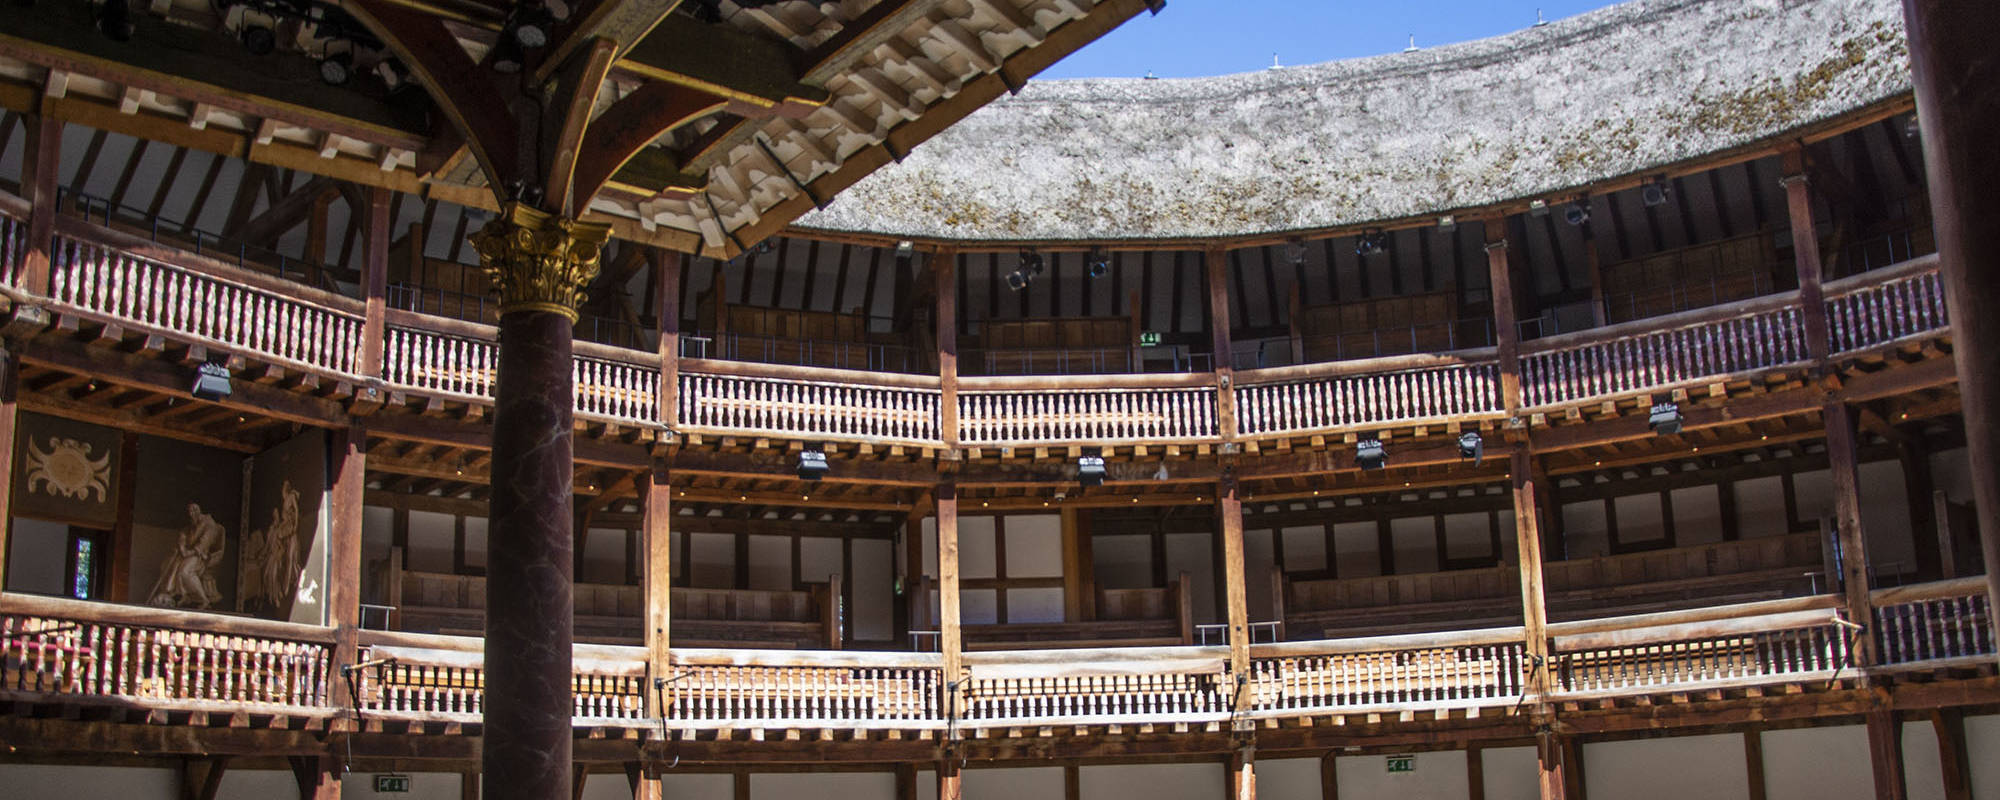 Sunlight streams into the yard of a wooden circular theatre.